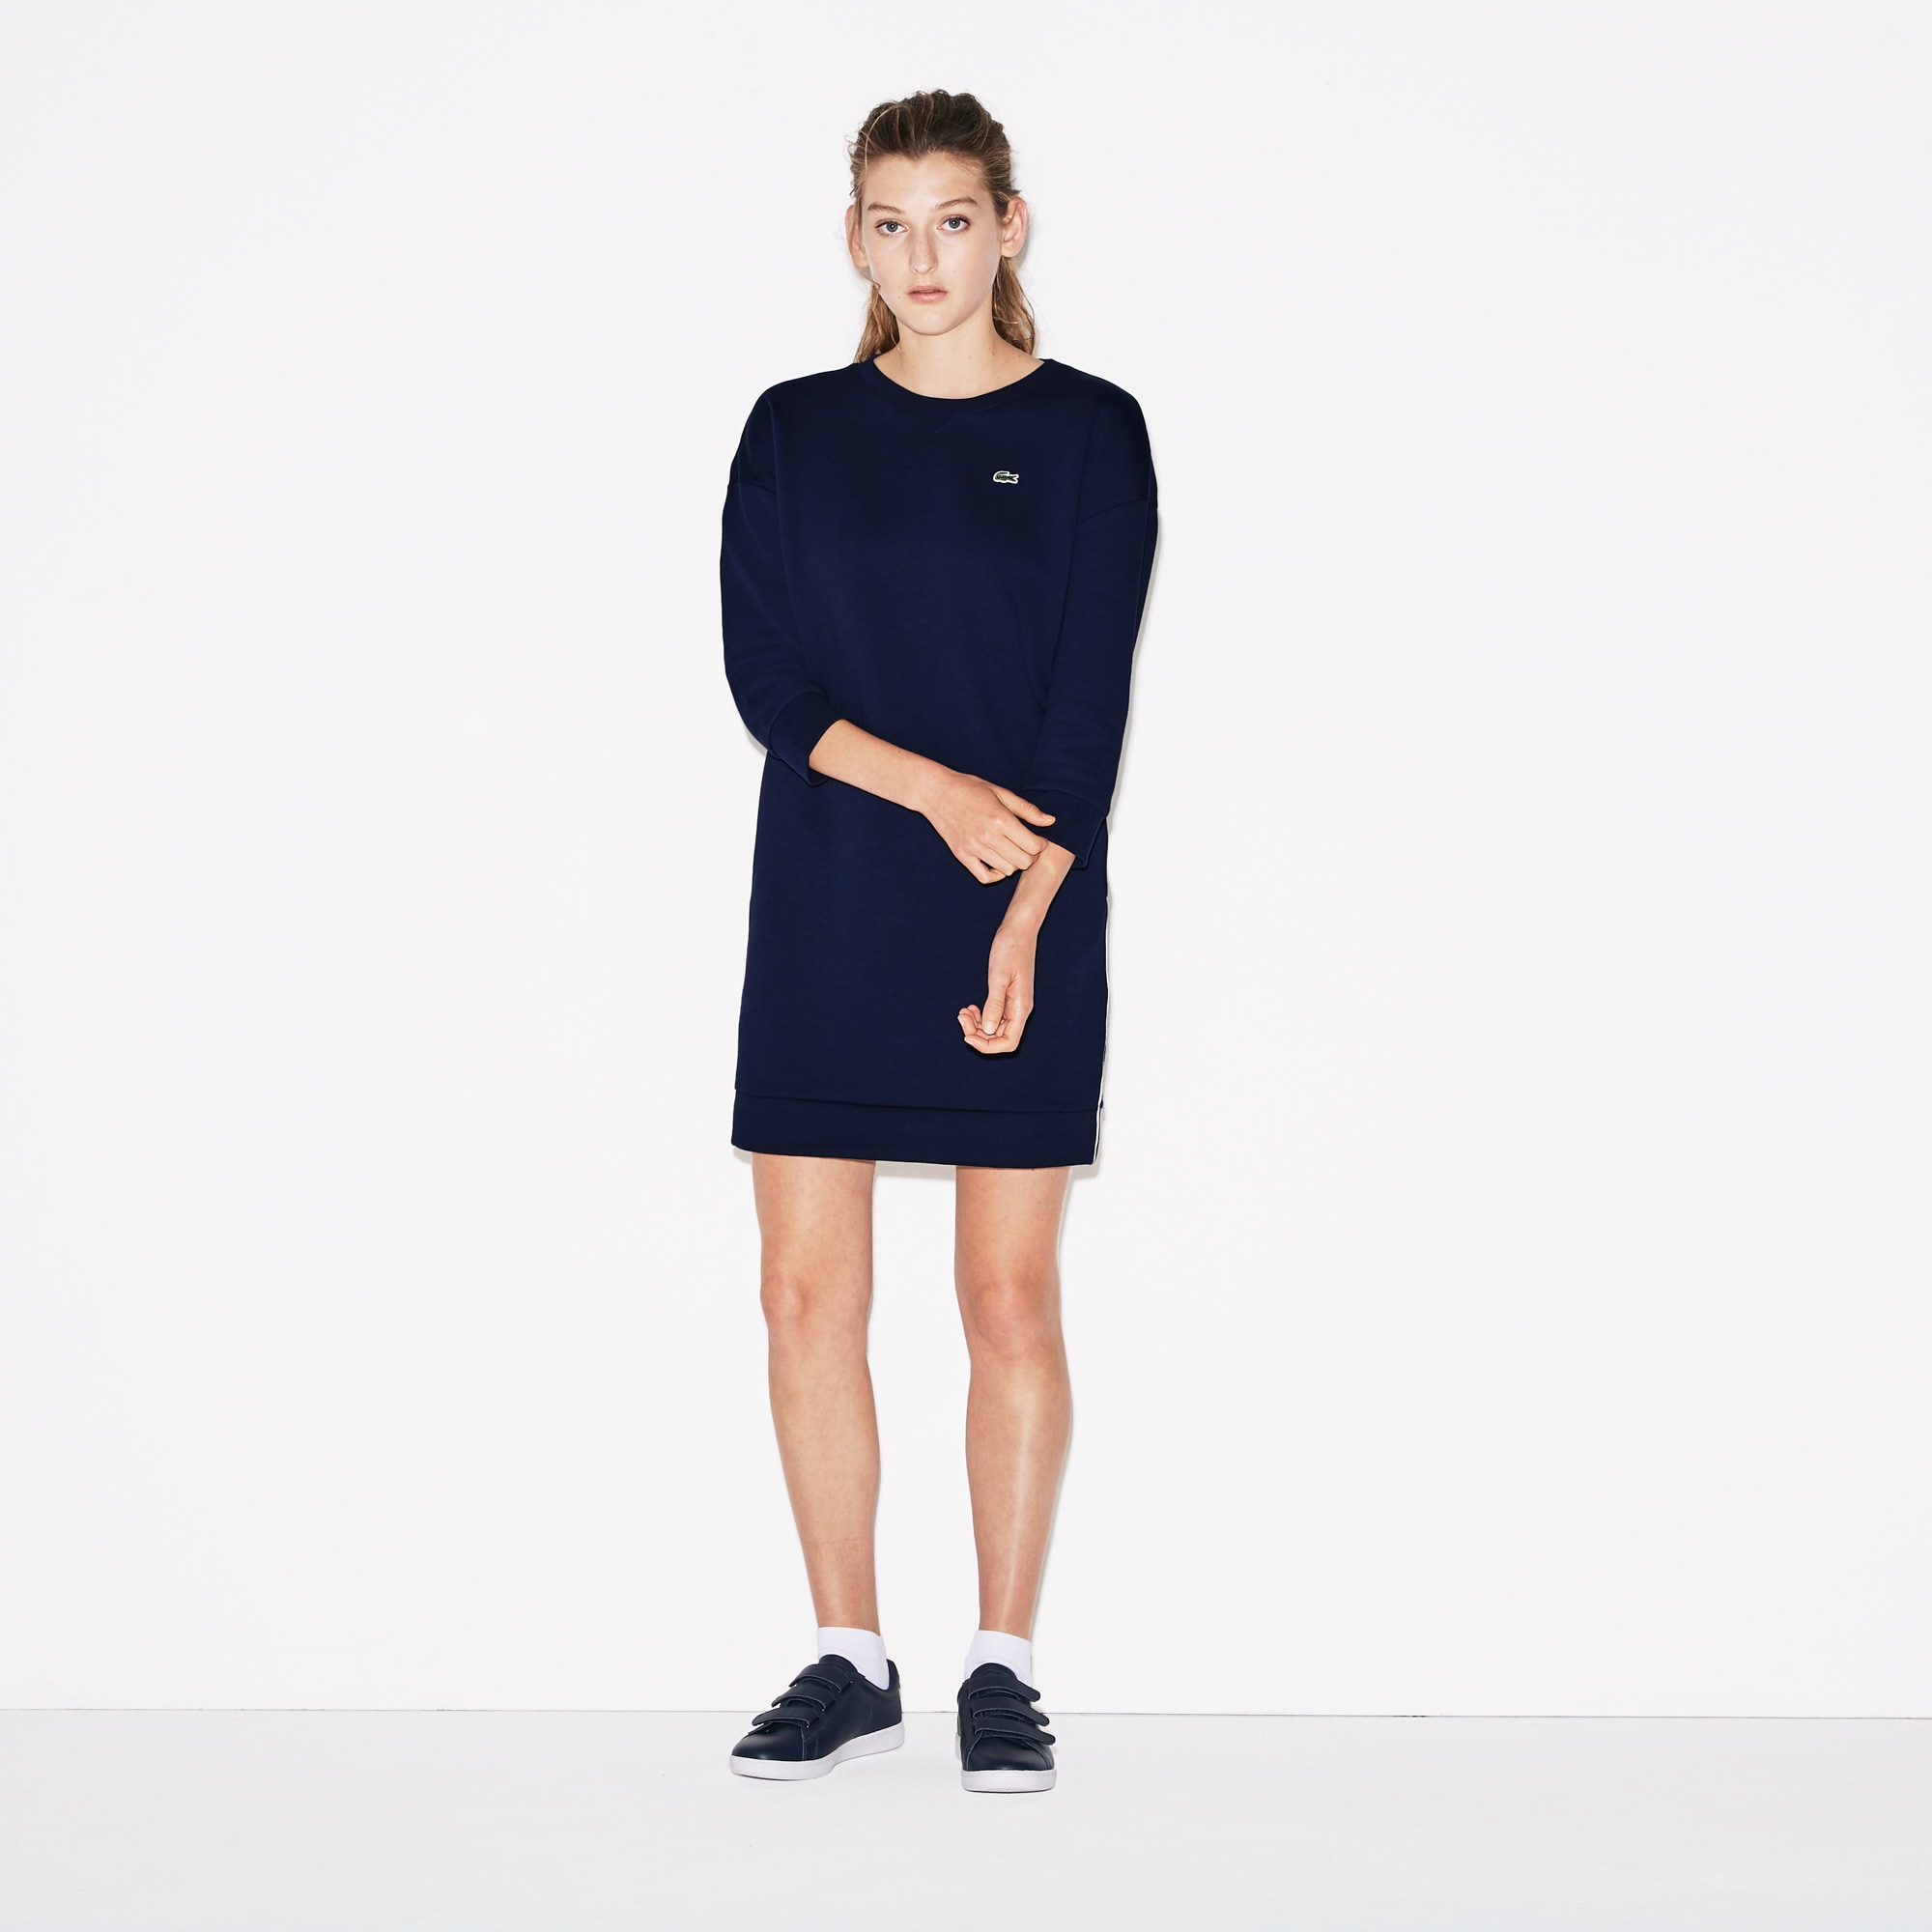 Womens Dresses And Skirts On Sale Lacoste